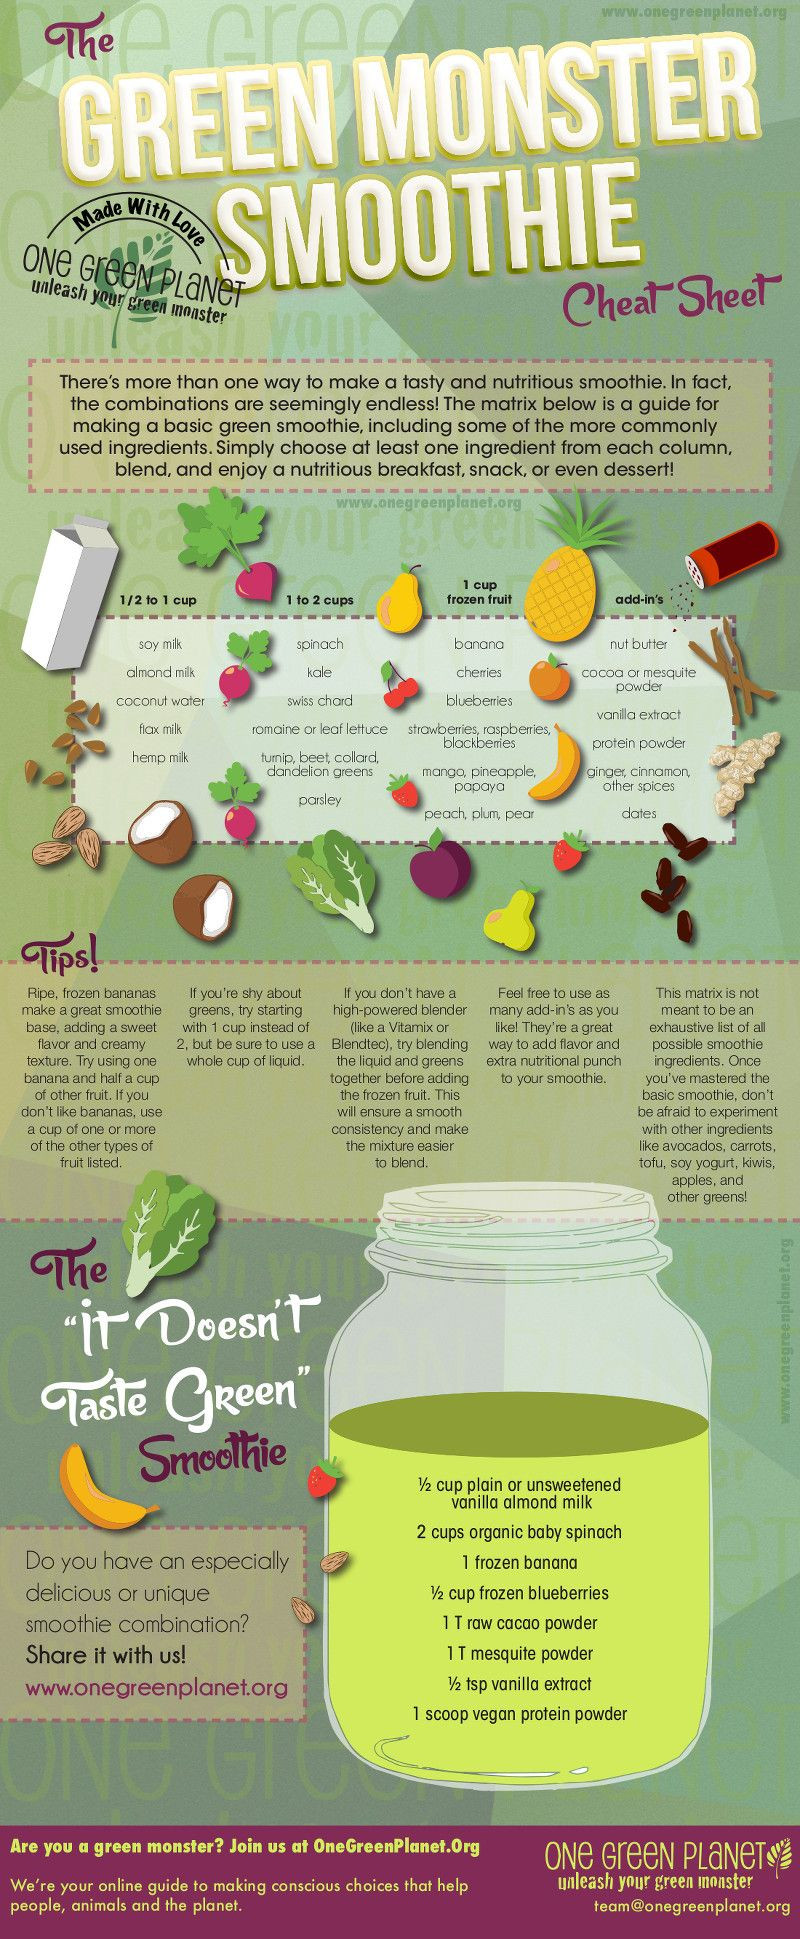 Planet Smoothie Recipes  The Green Monster Smoothie Cheat Sheet